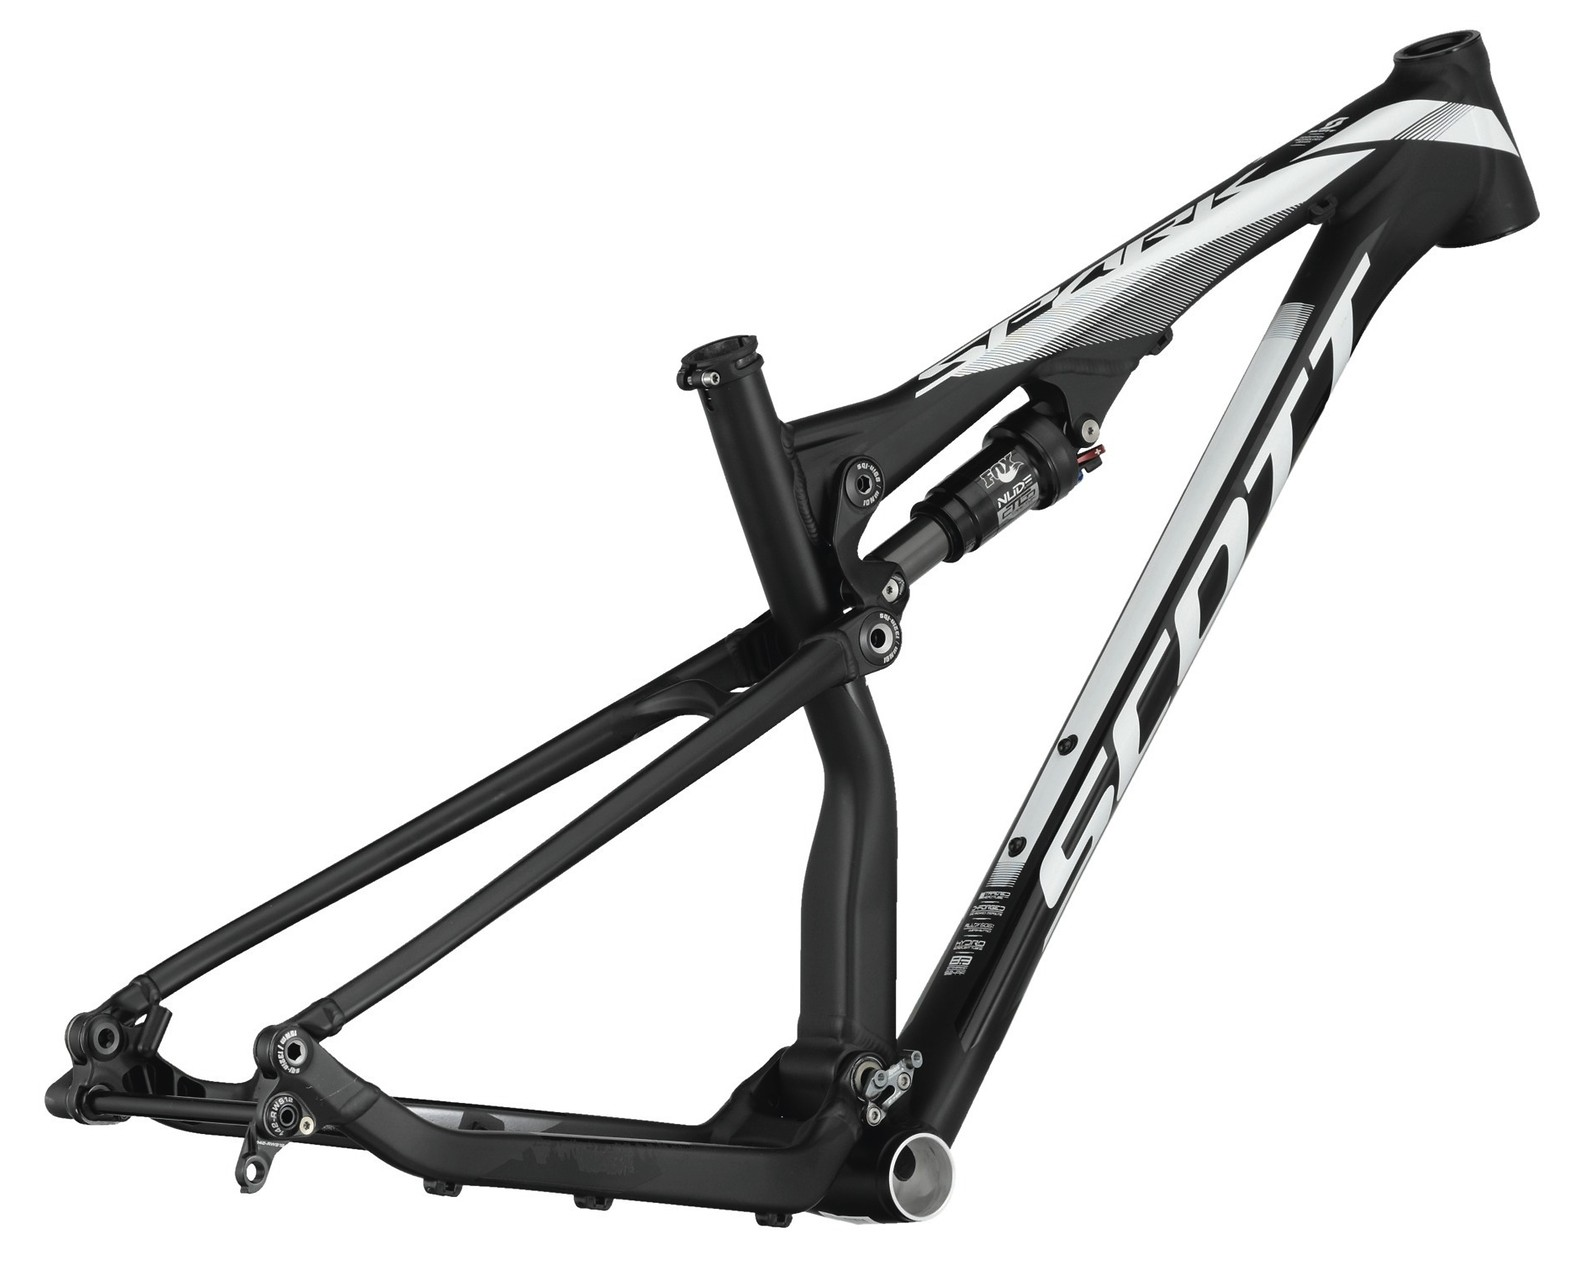 Scott Spark 940 Frame Reviews Comparisons Specs